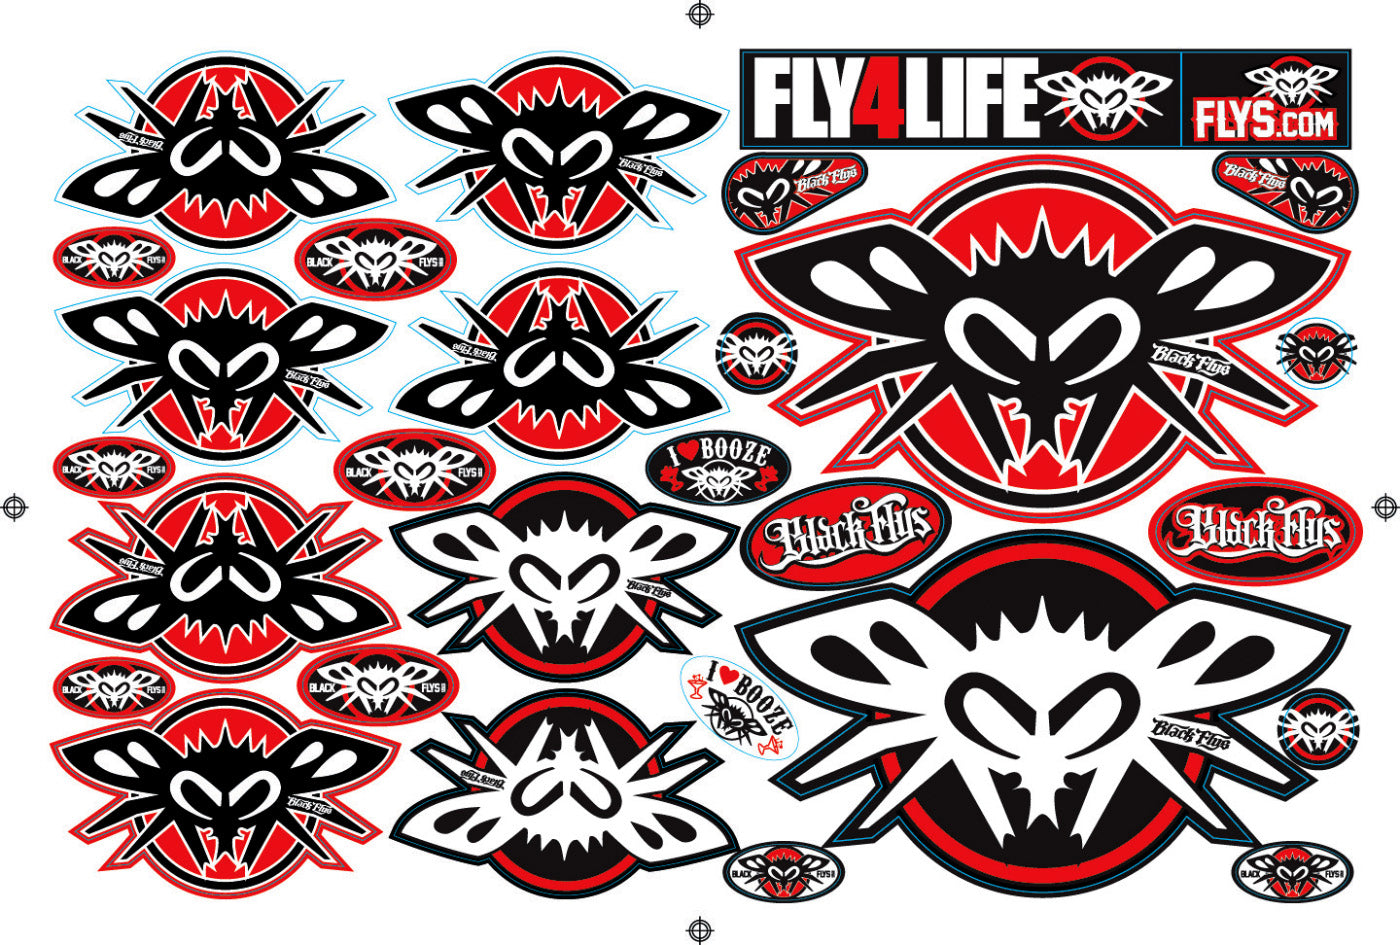 Team Sticker Packs